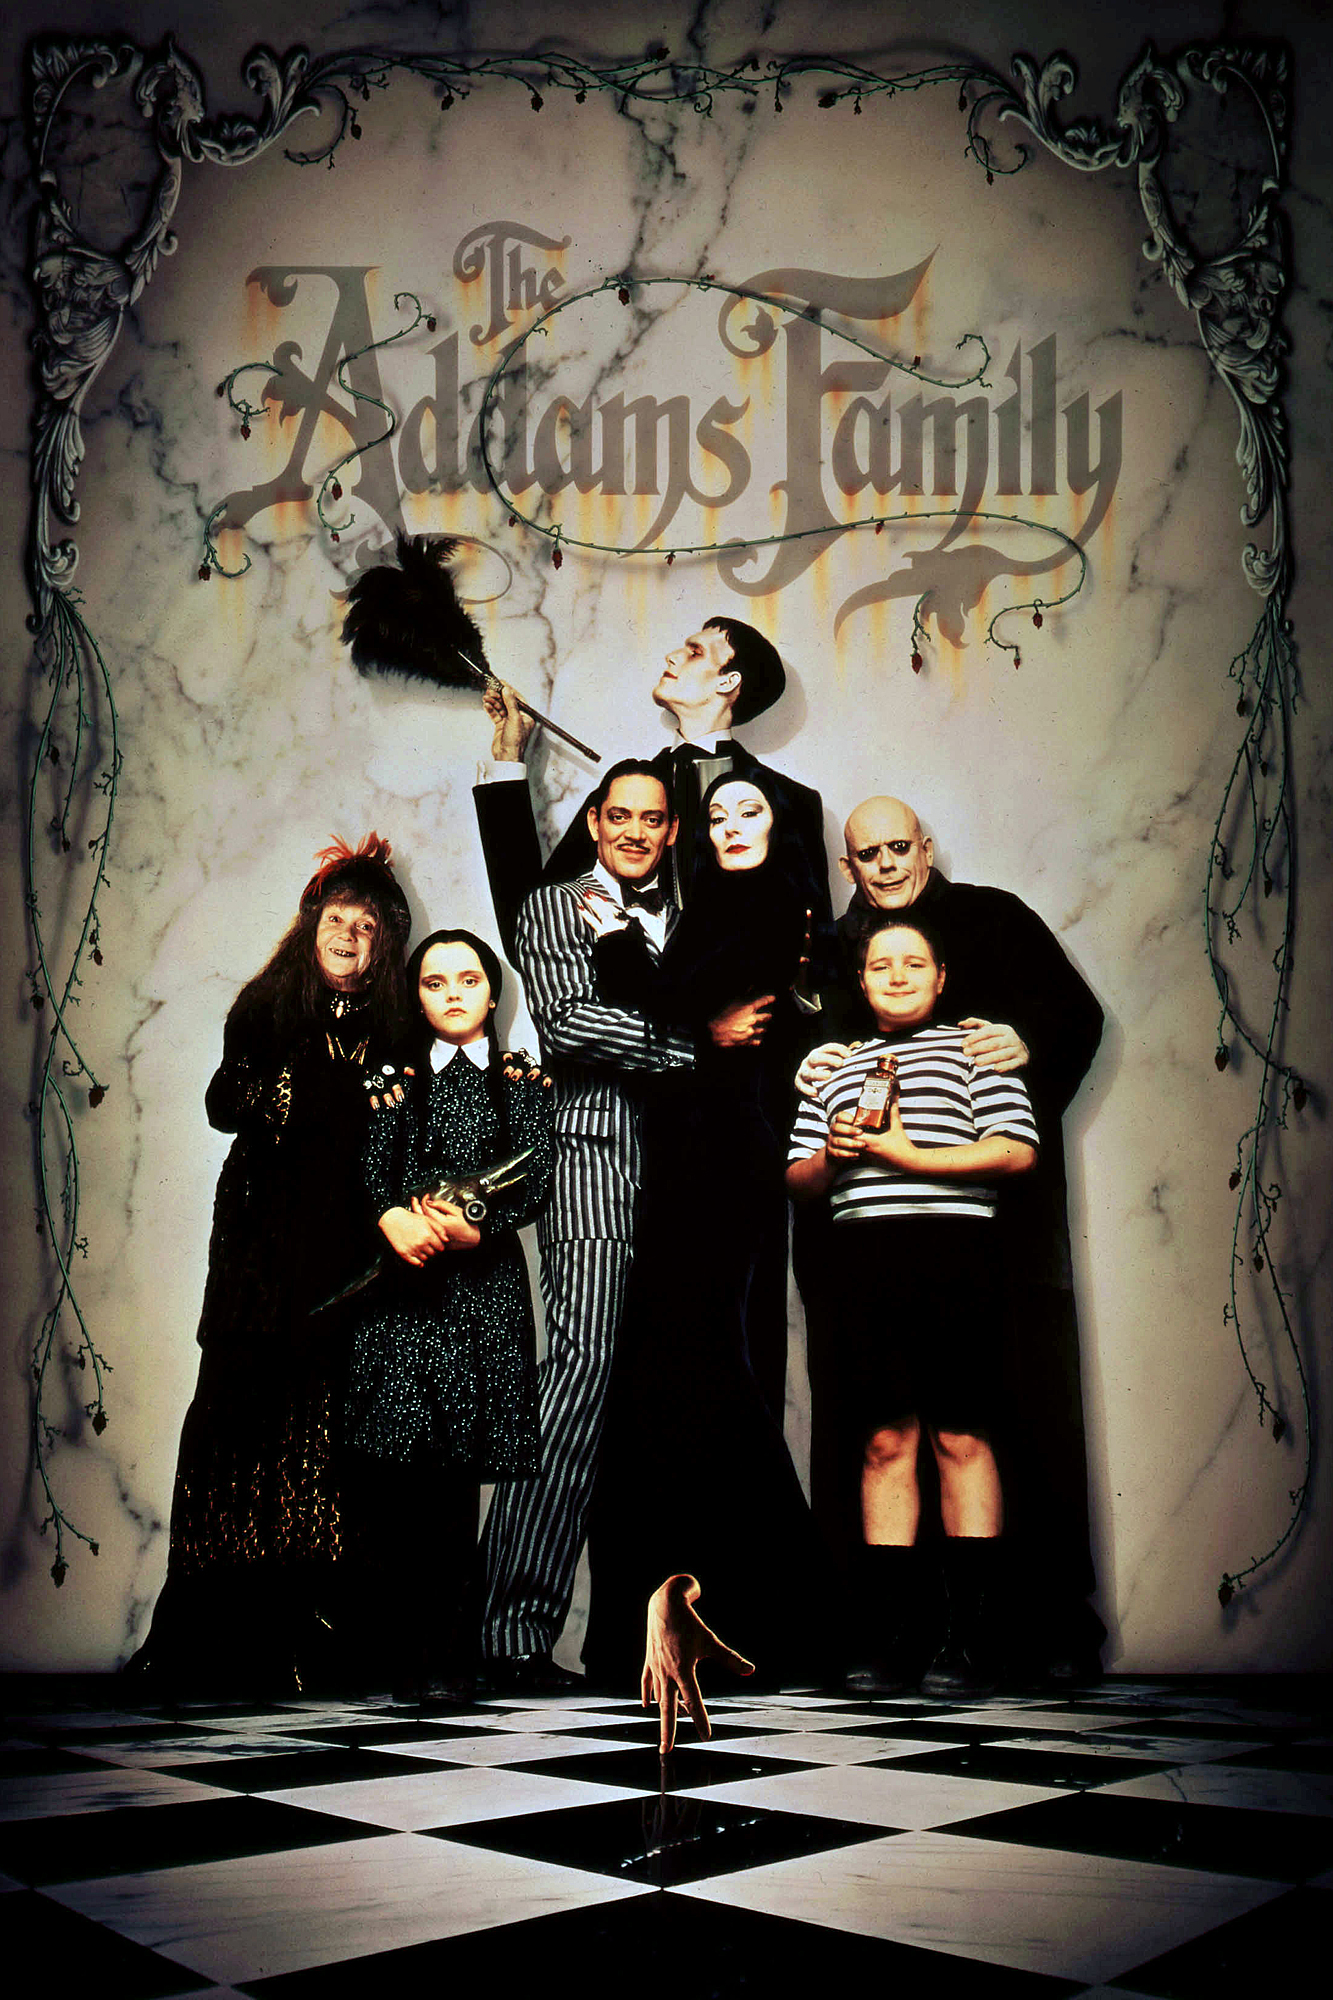 The Addams Family - 1991